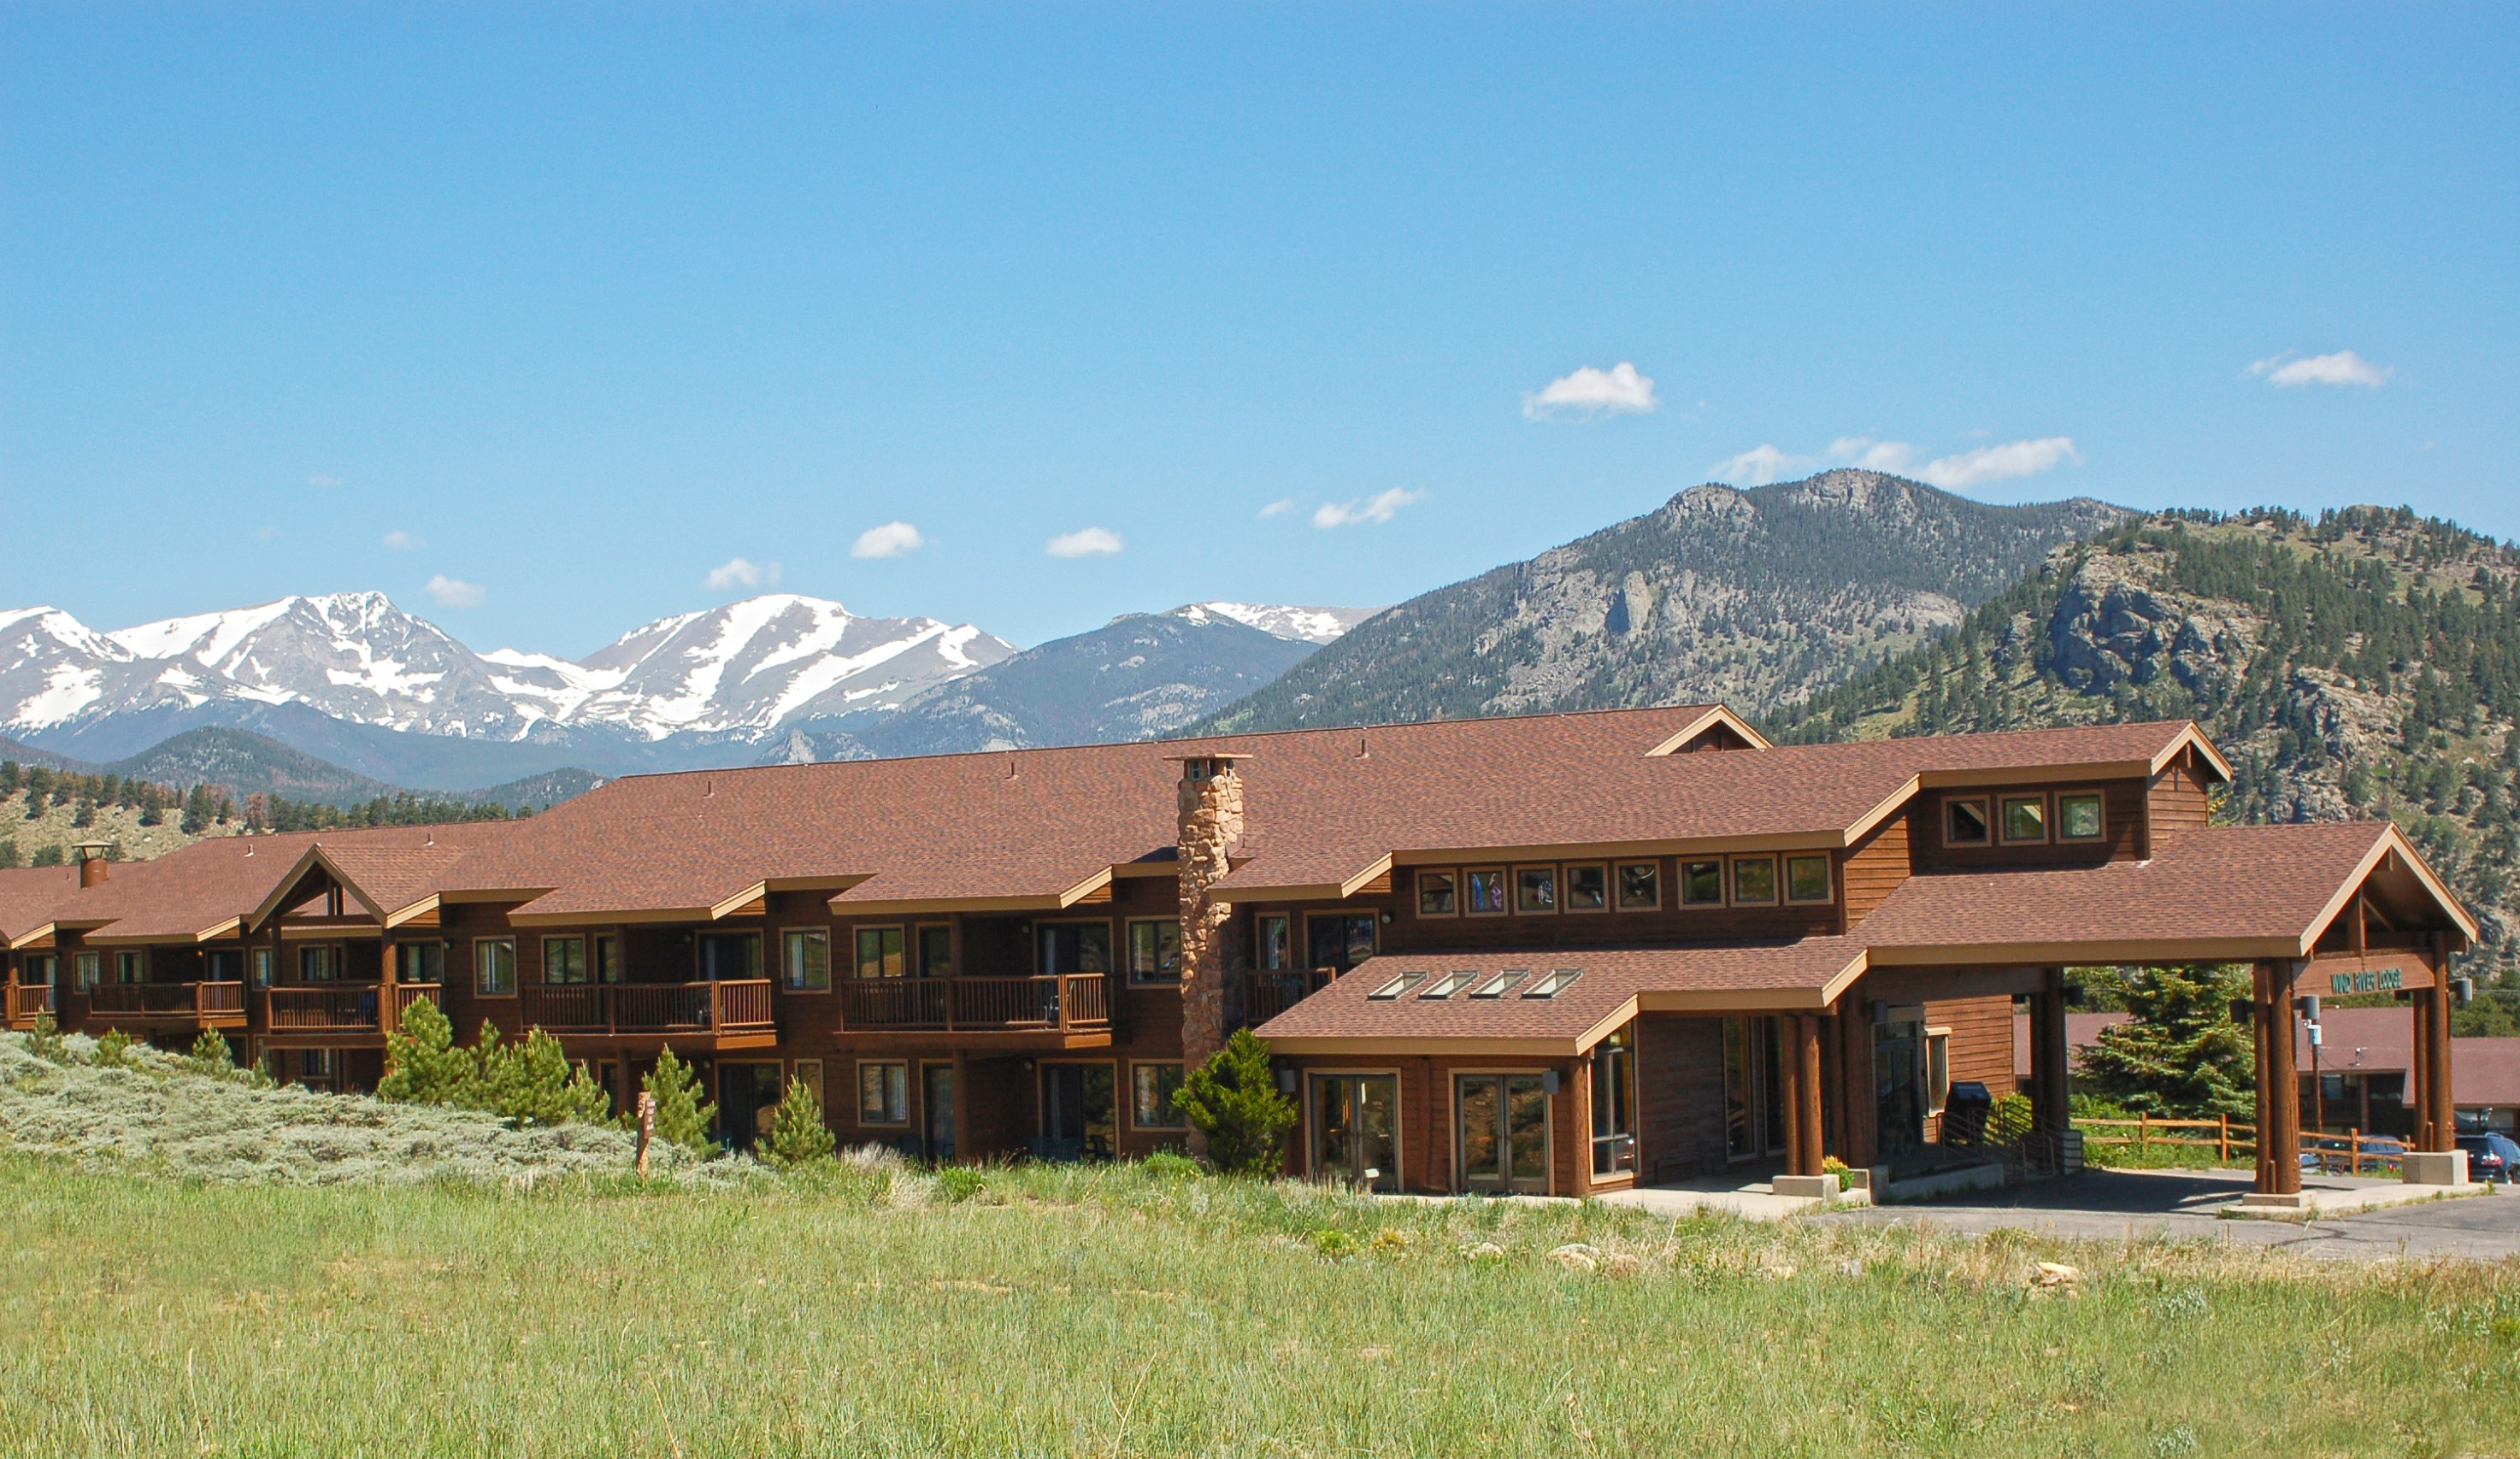 YMCA of the Rockies WindRiver Lodge